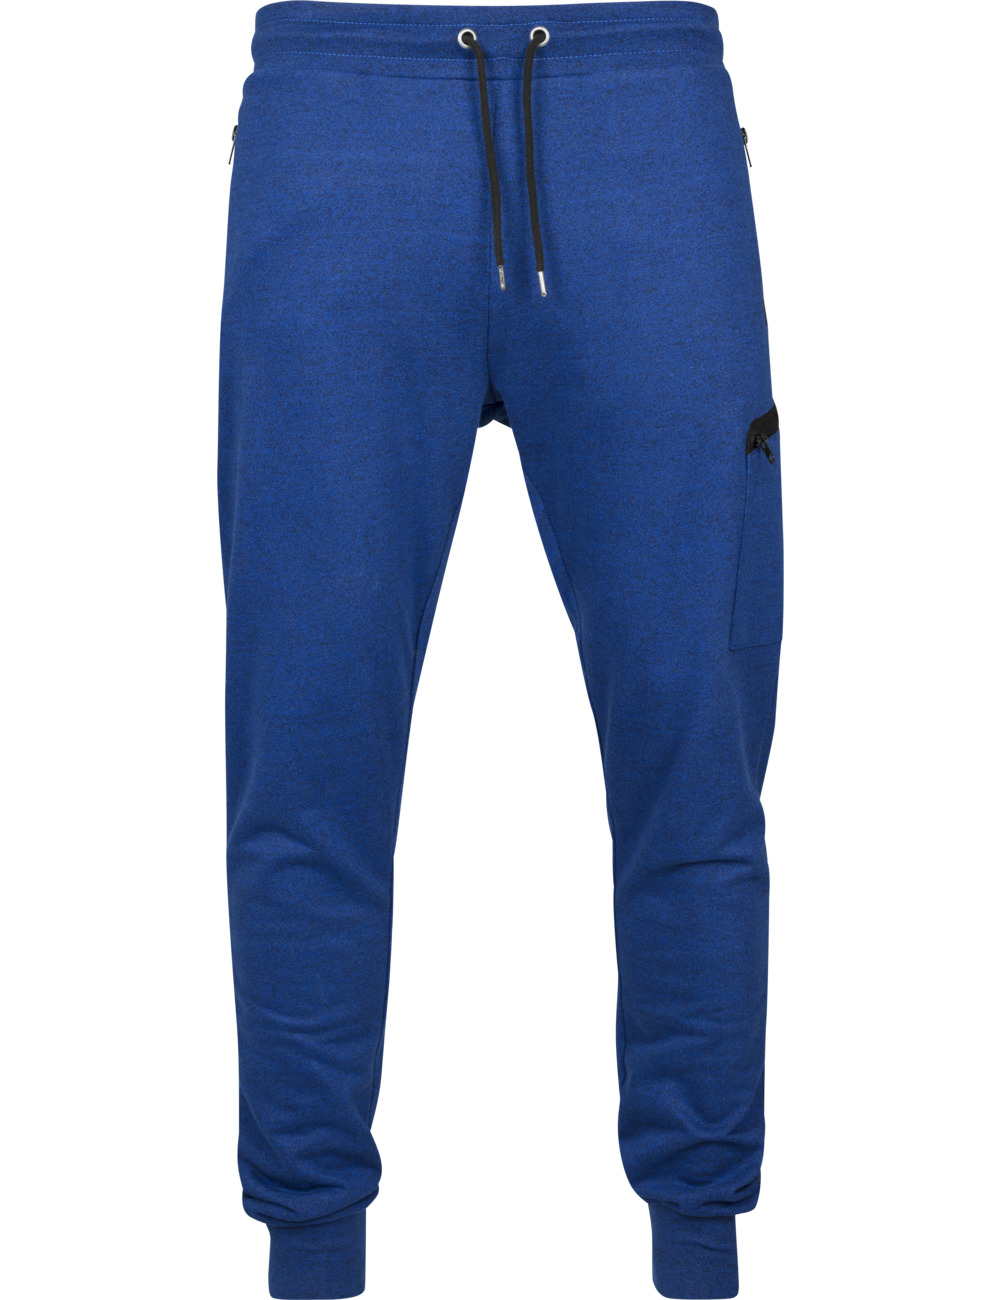 urban-classics-herren-sweatpants-active-melange-jogpants